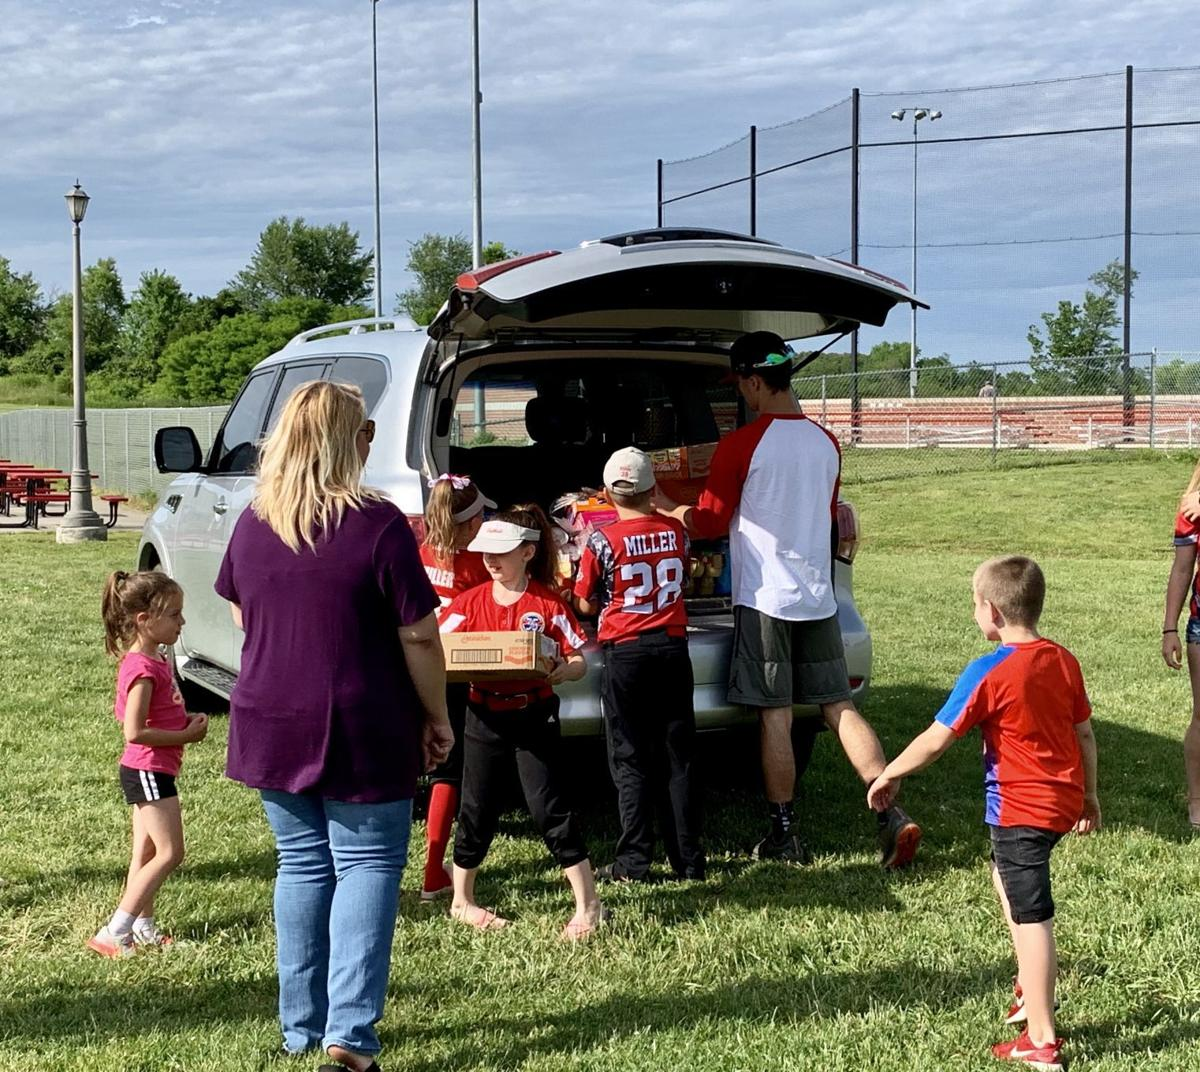 Local baseball, softball league fills trailer with food in an effort to give back to the community